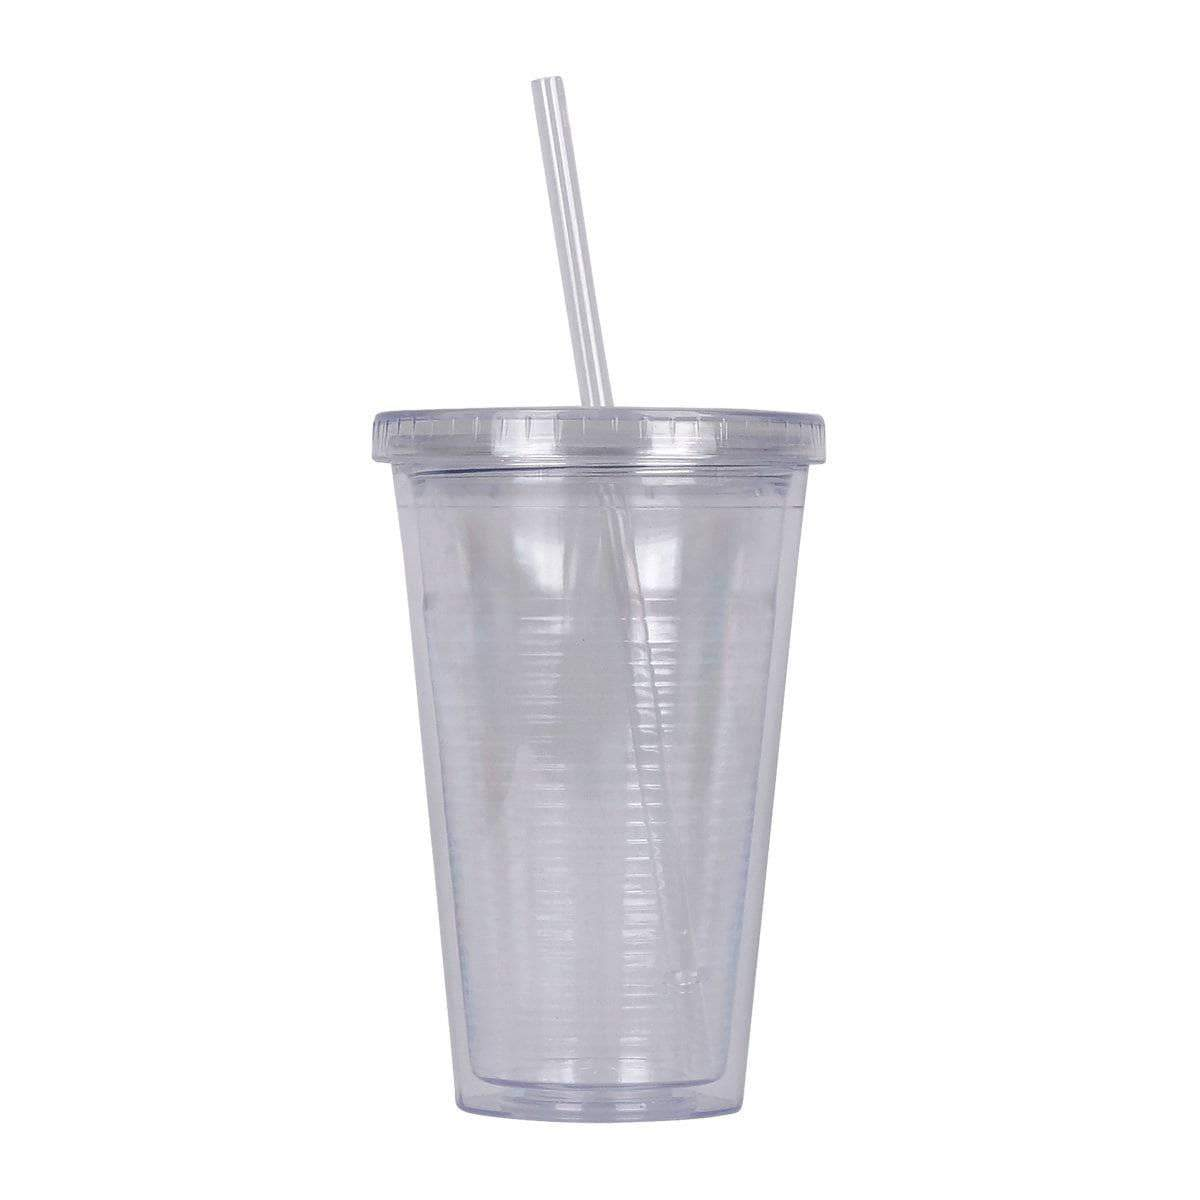 Geo Bottles Tumblers Clear 16oz Double Wall Cup with Straw - BPA Free